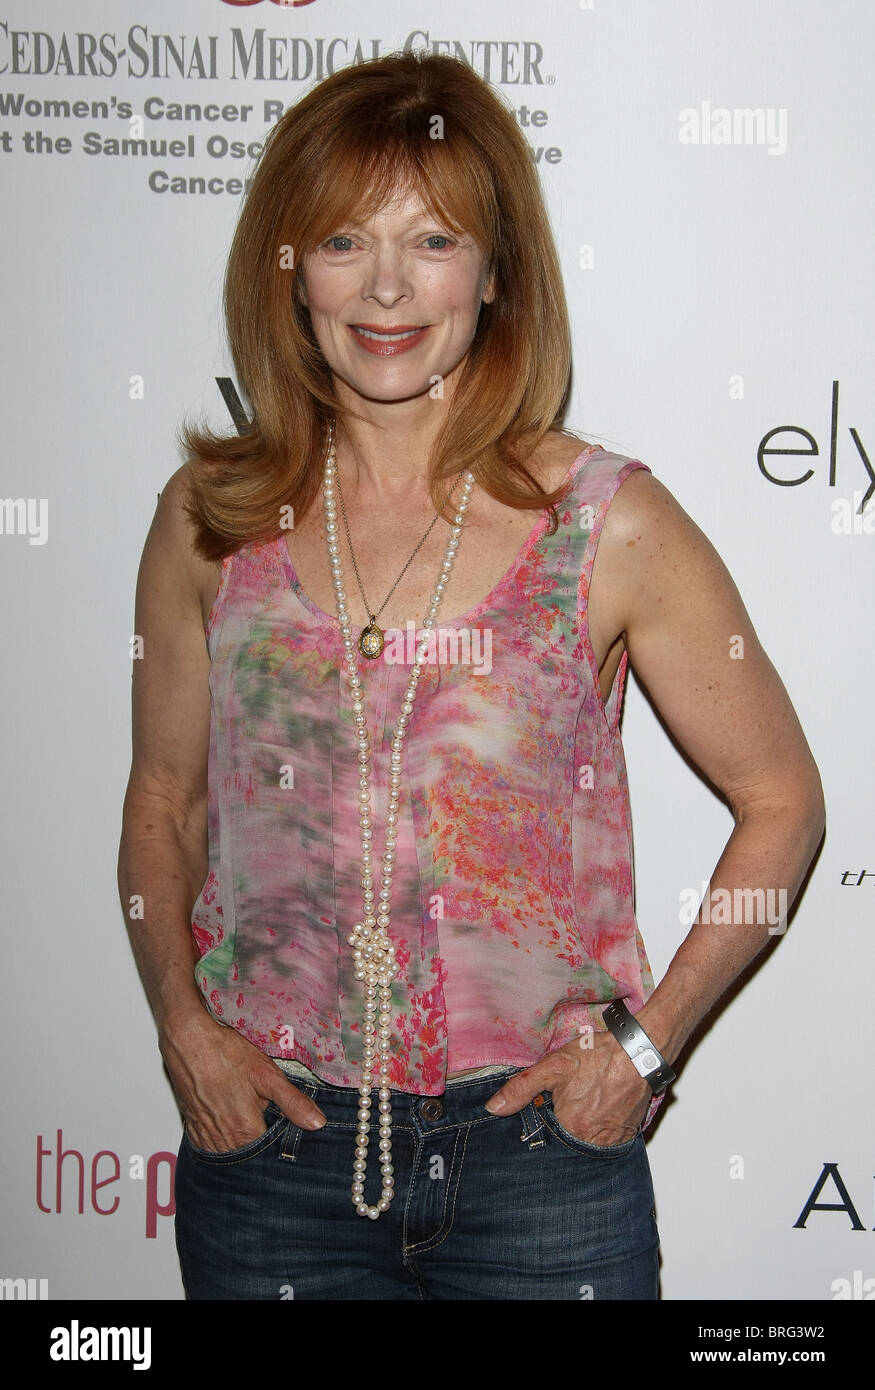 FRANCIS FISHER 6TH ANNUAL PINK PARTY HOLLYWOOD LOS ANGELES CALIFORNIA USA 25 September 2010 - Stock Image